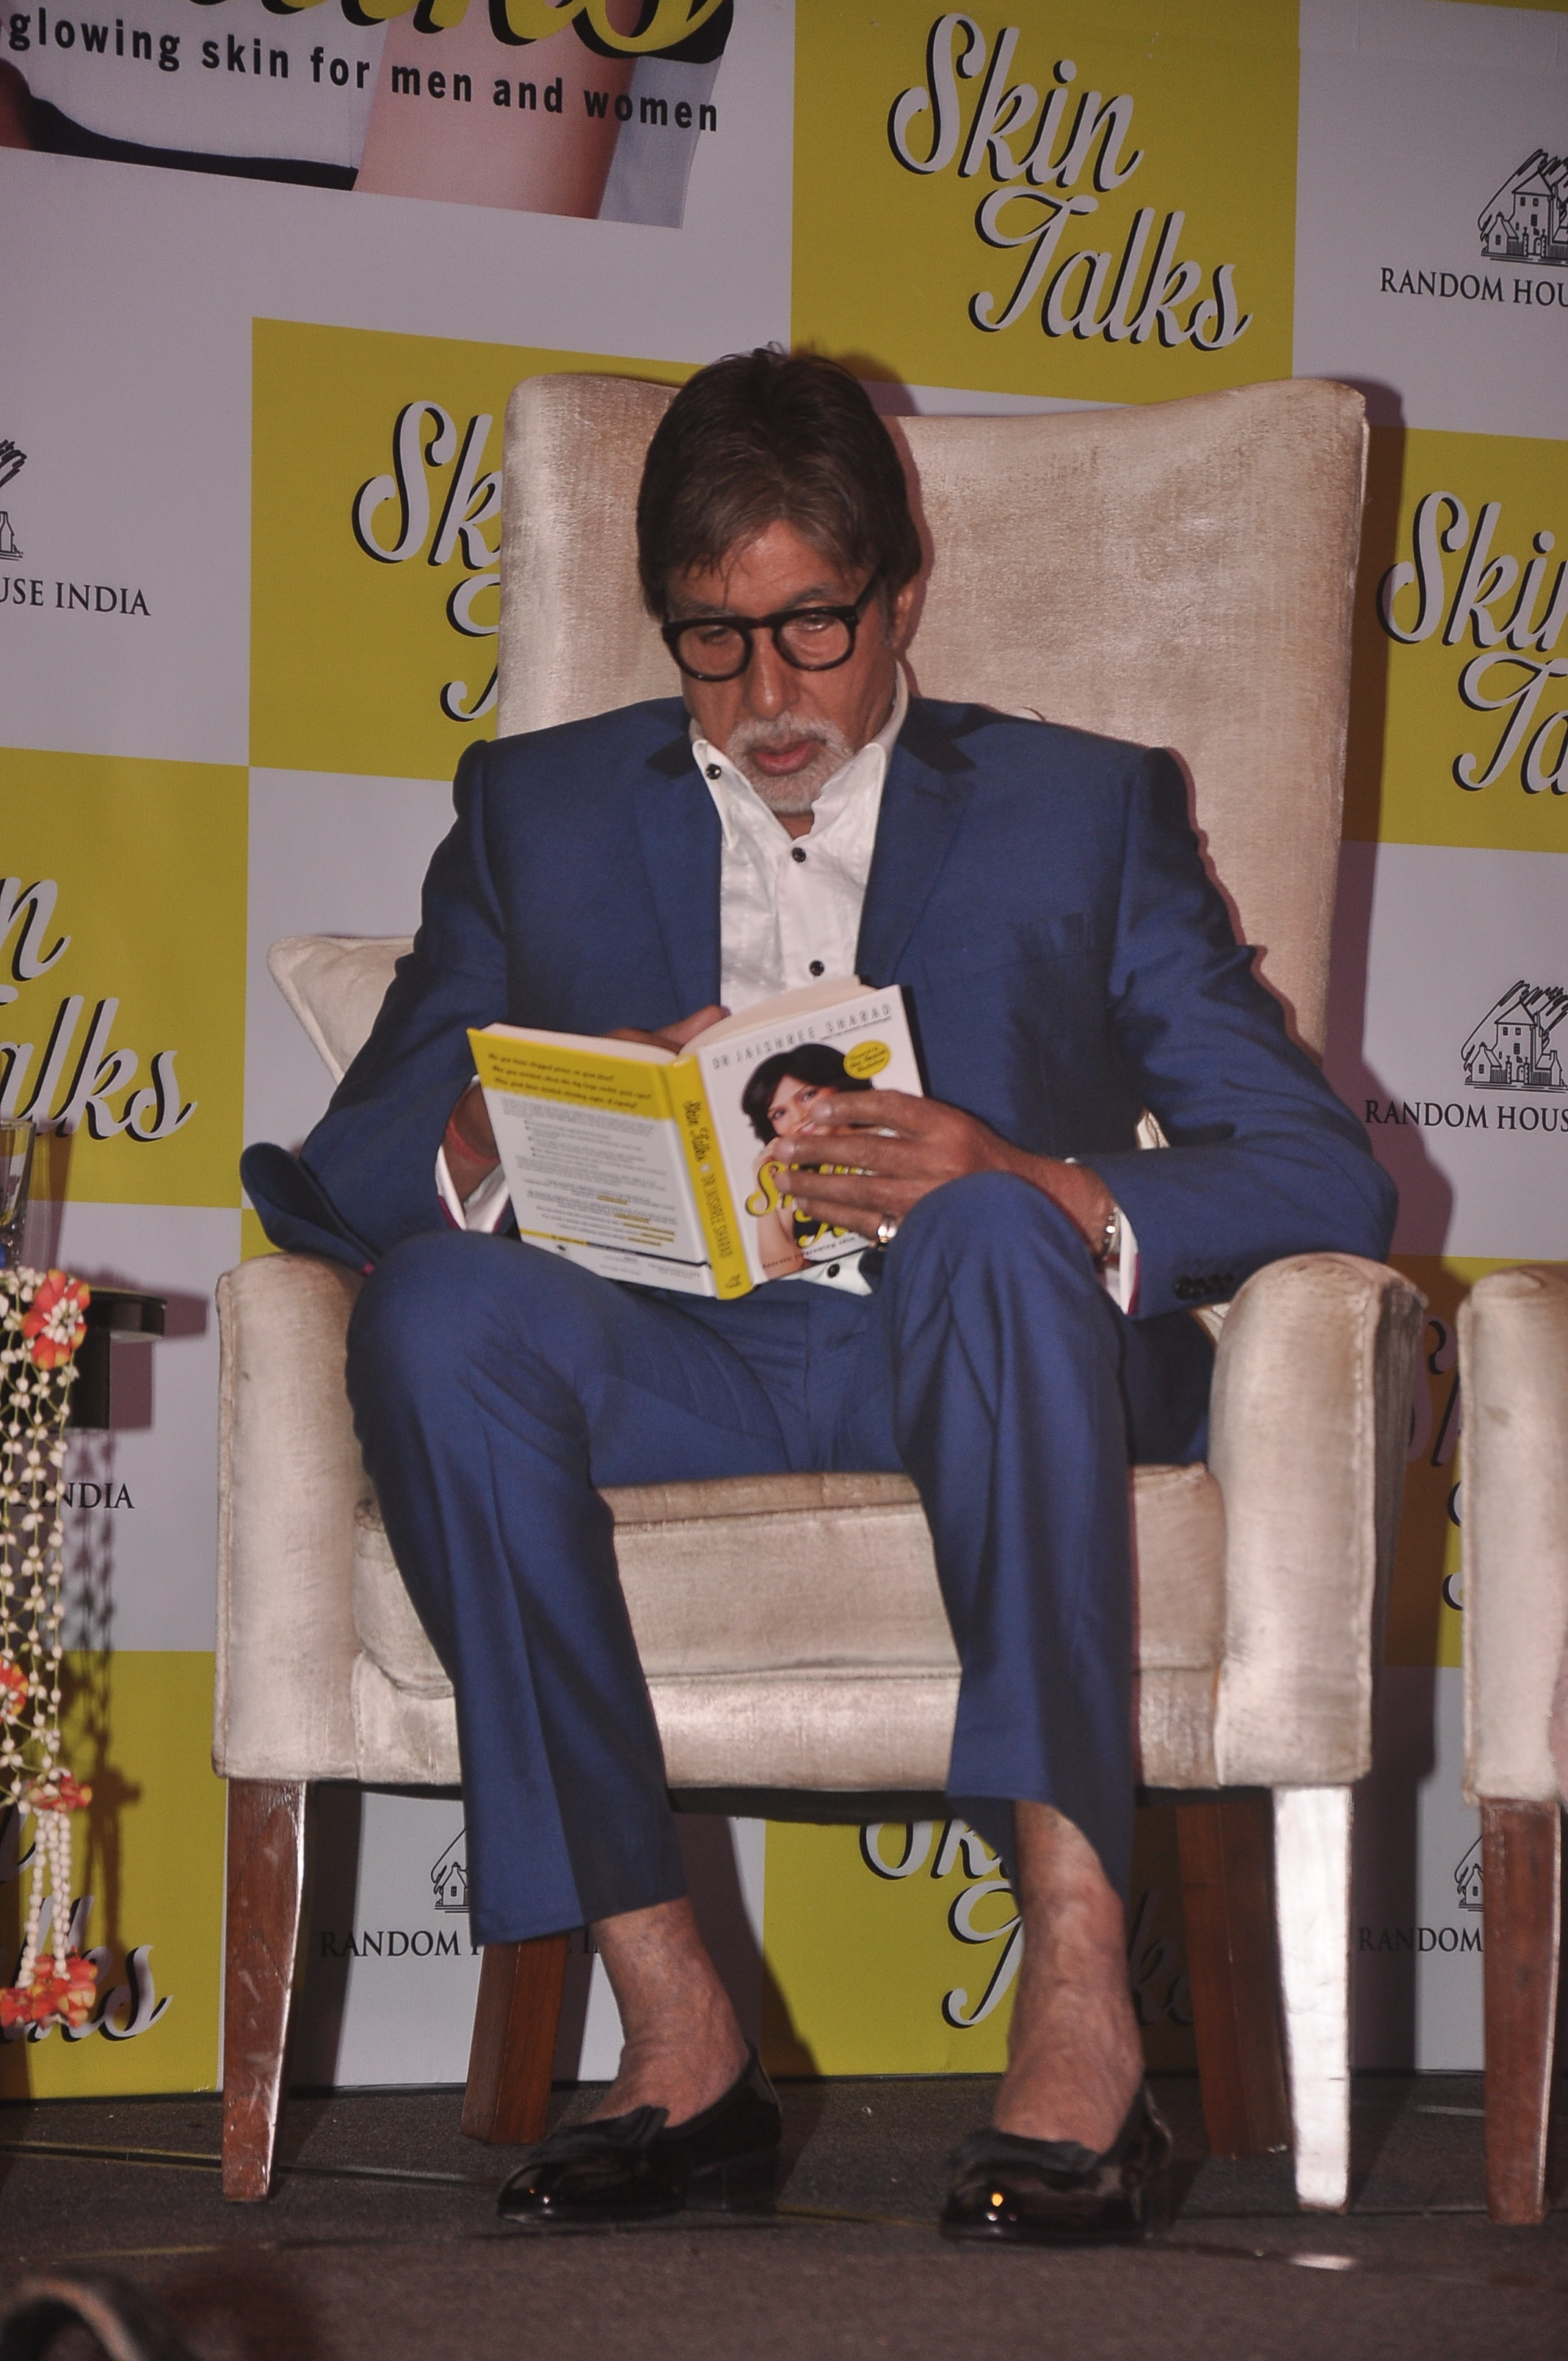 Sir AB browsing through Skin Talks during the book launch